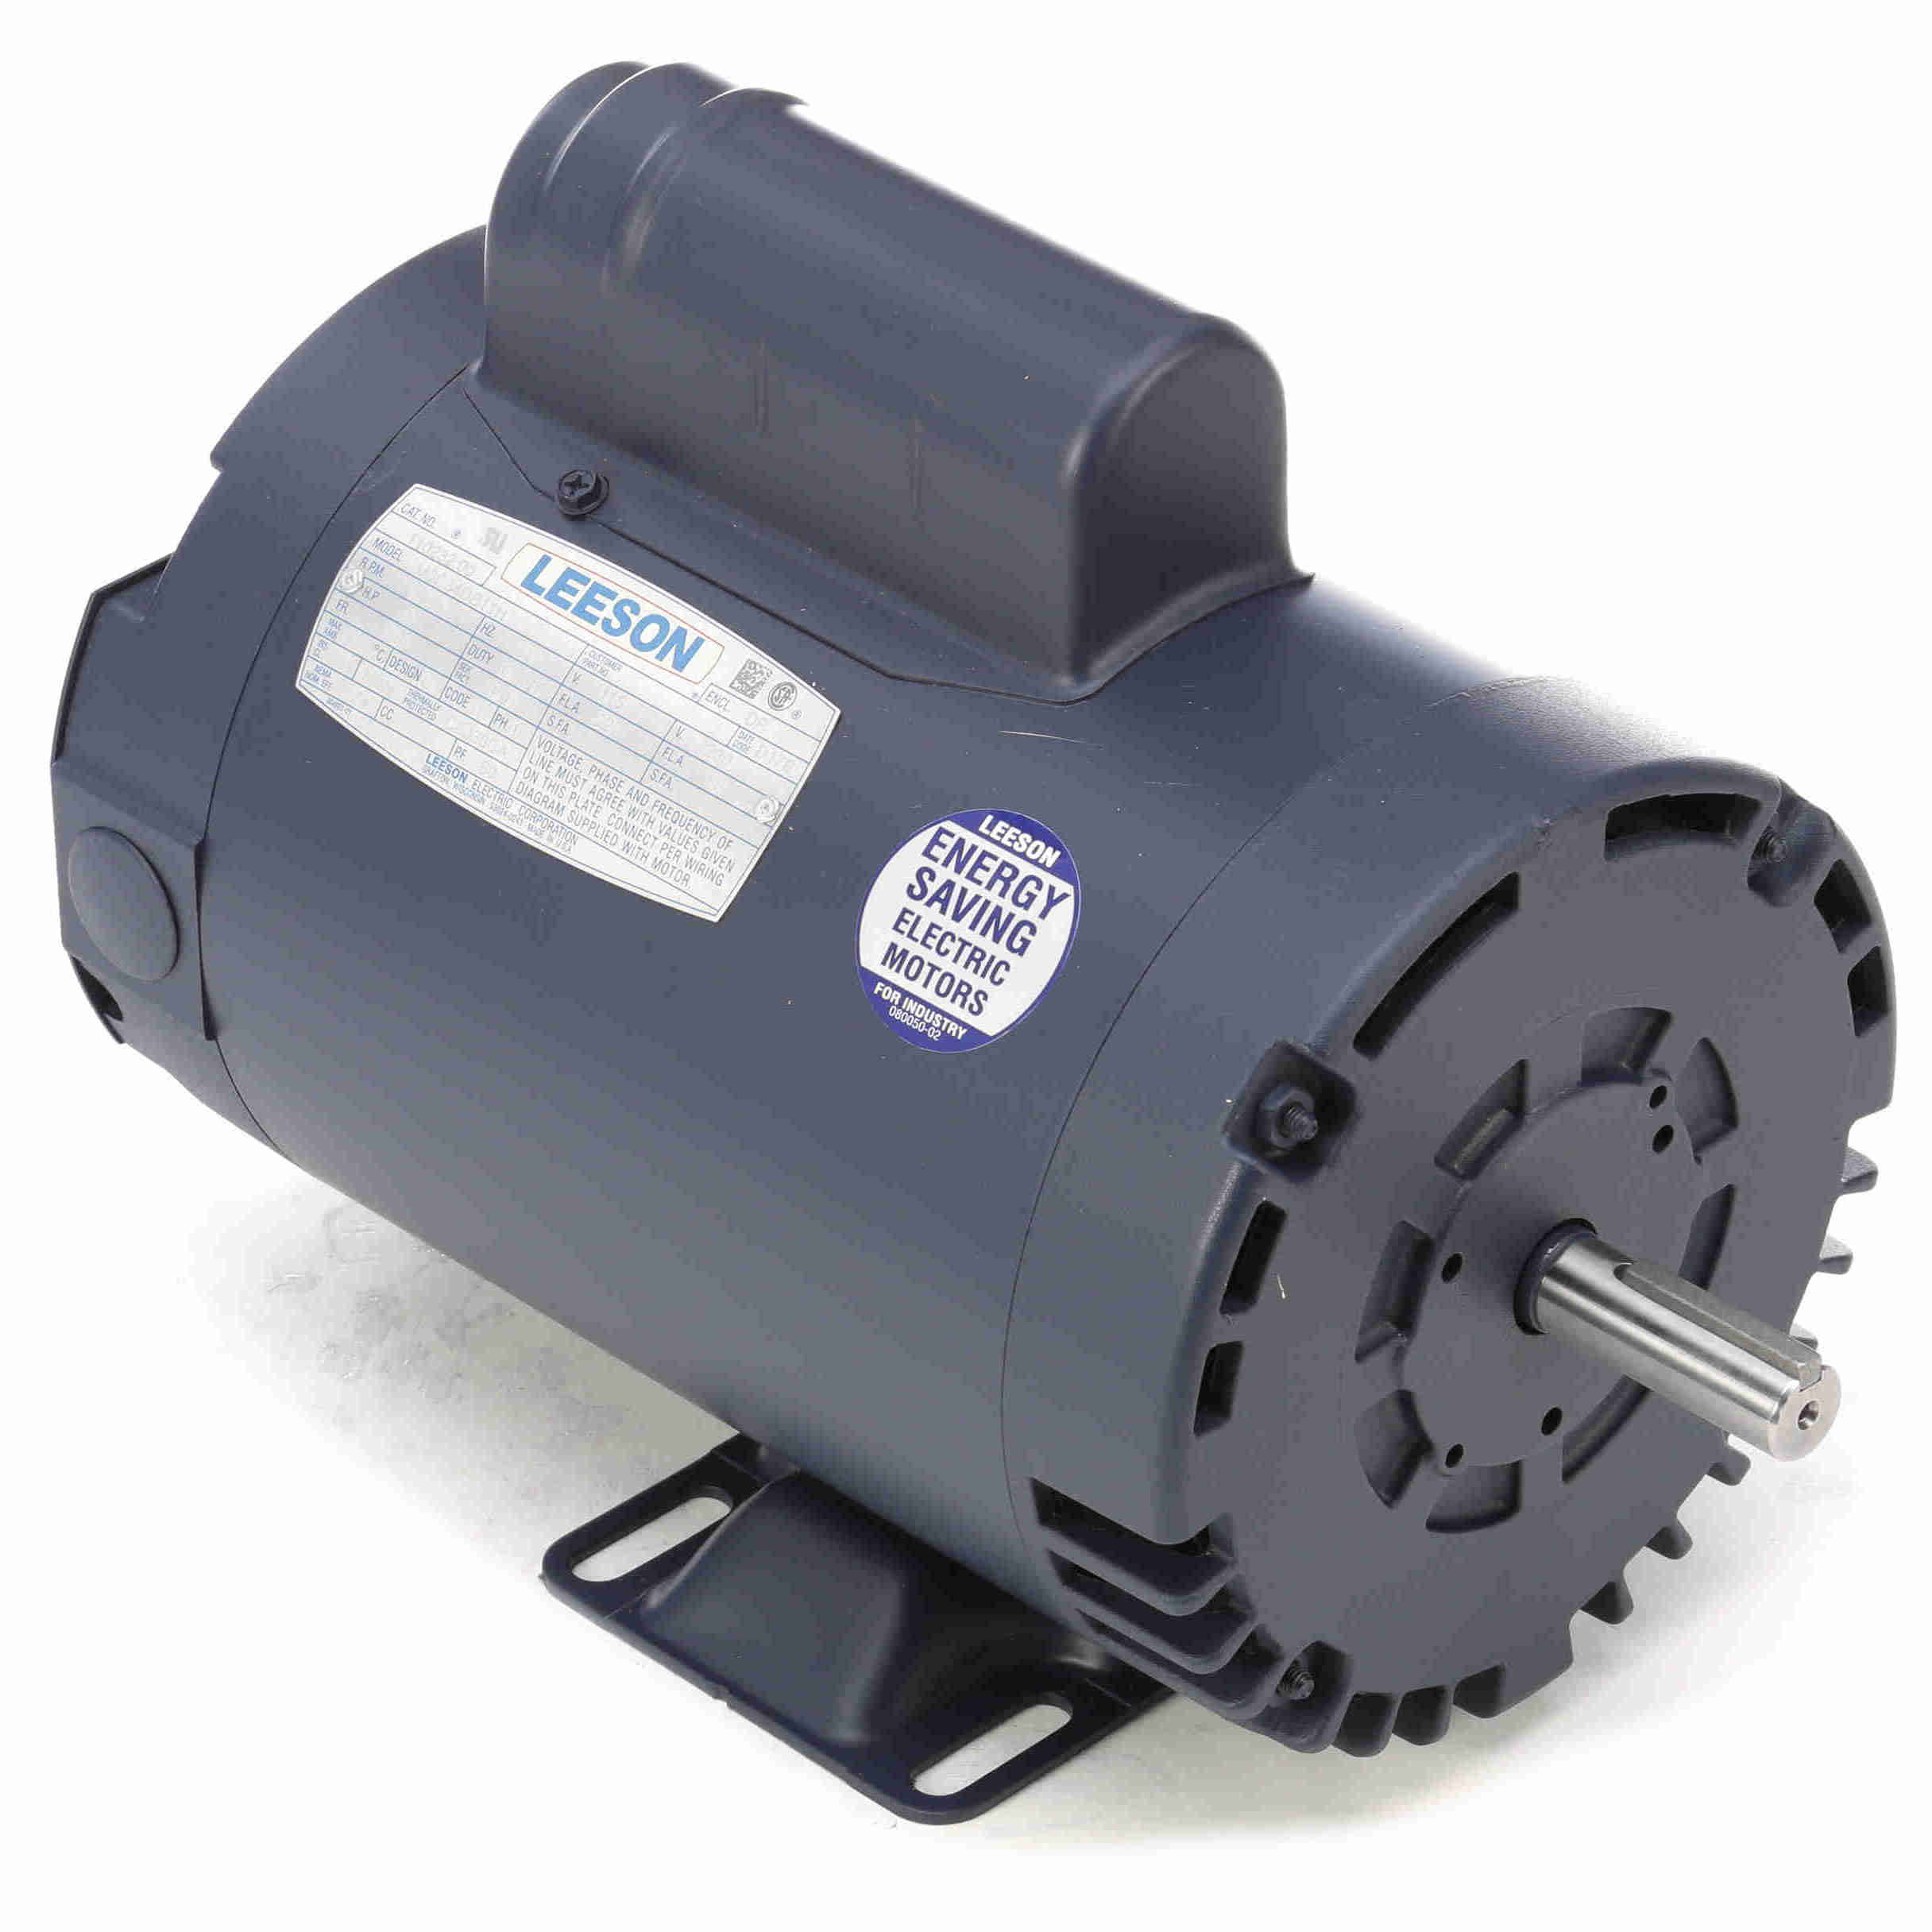 110232 00 leeson 2hp electric motor, 3450rpm 1